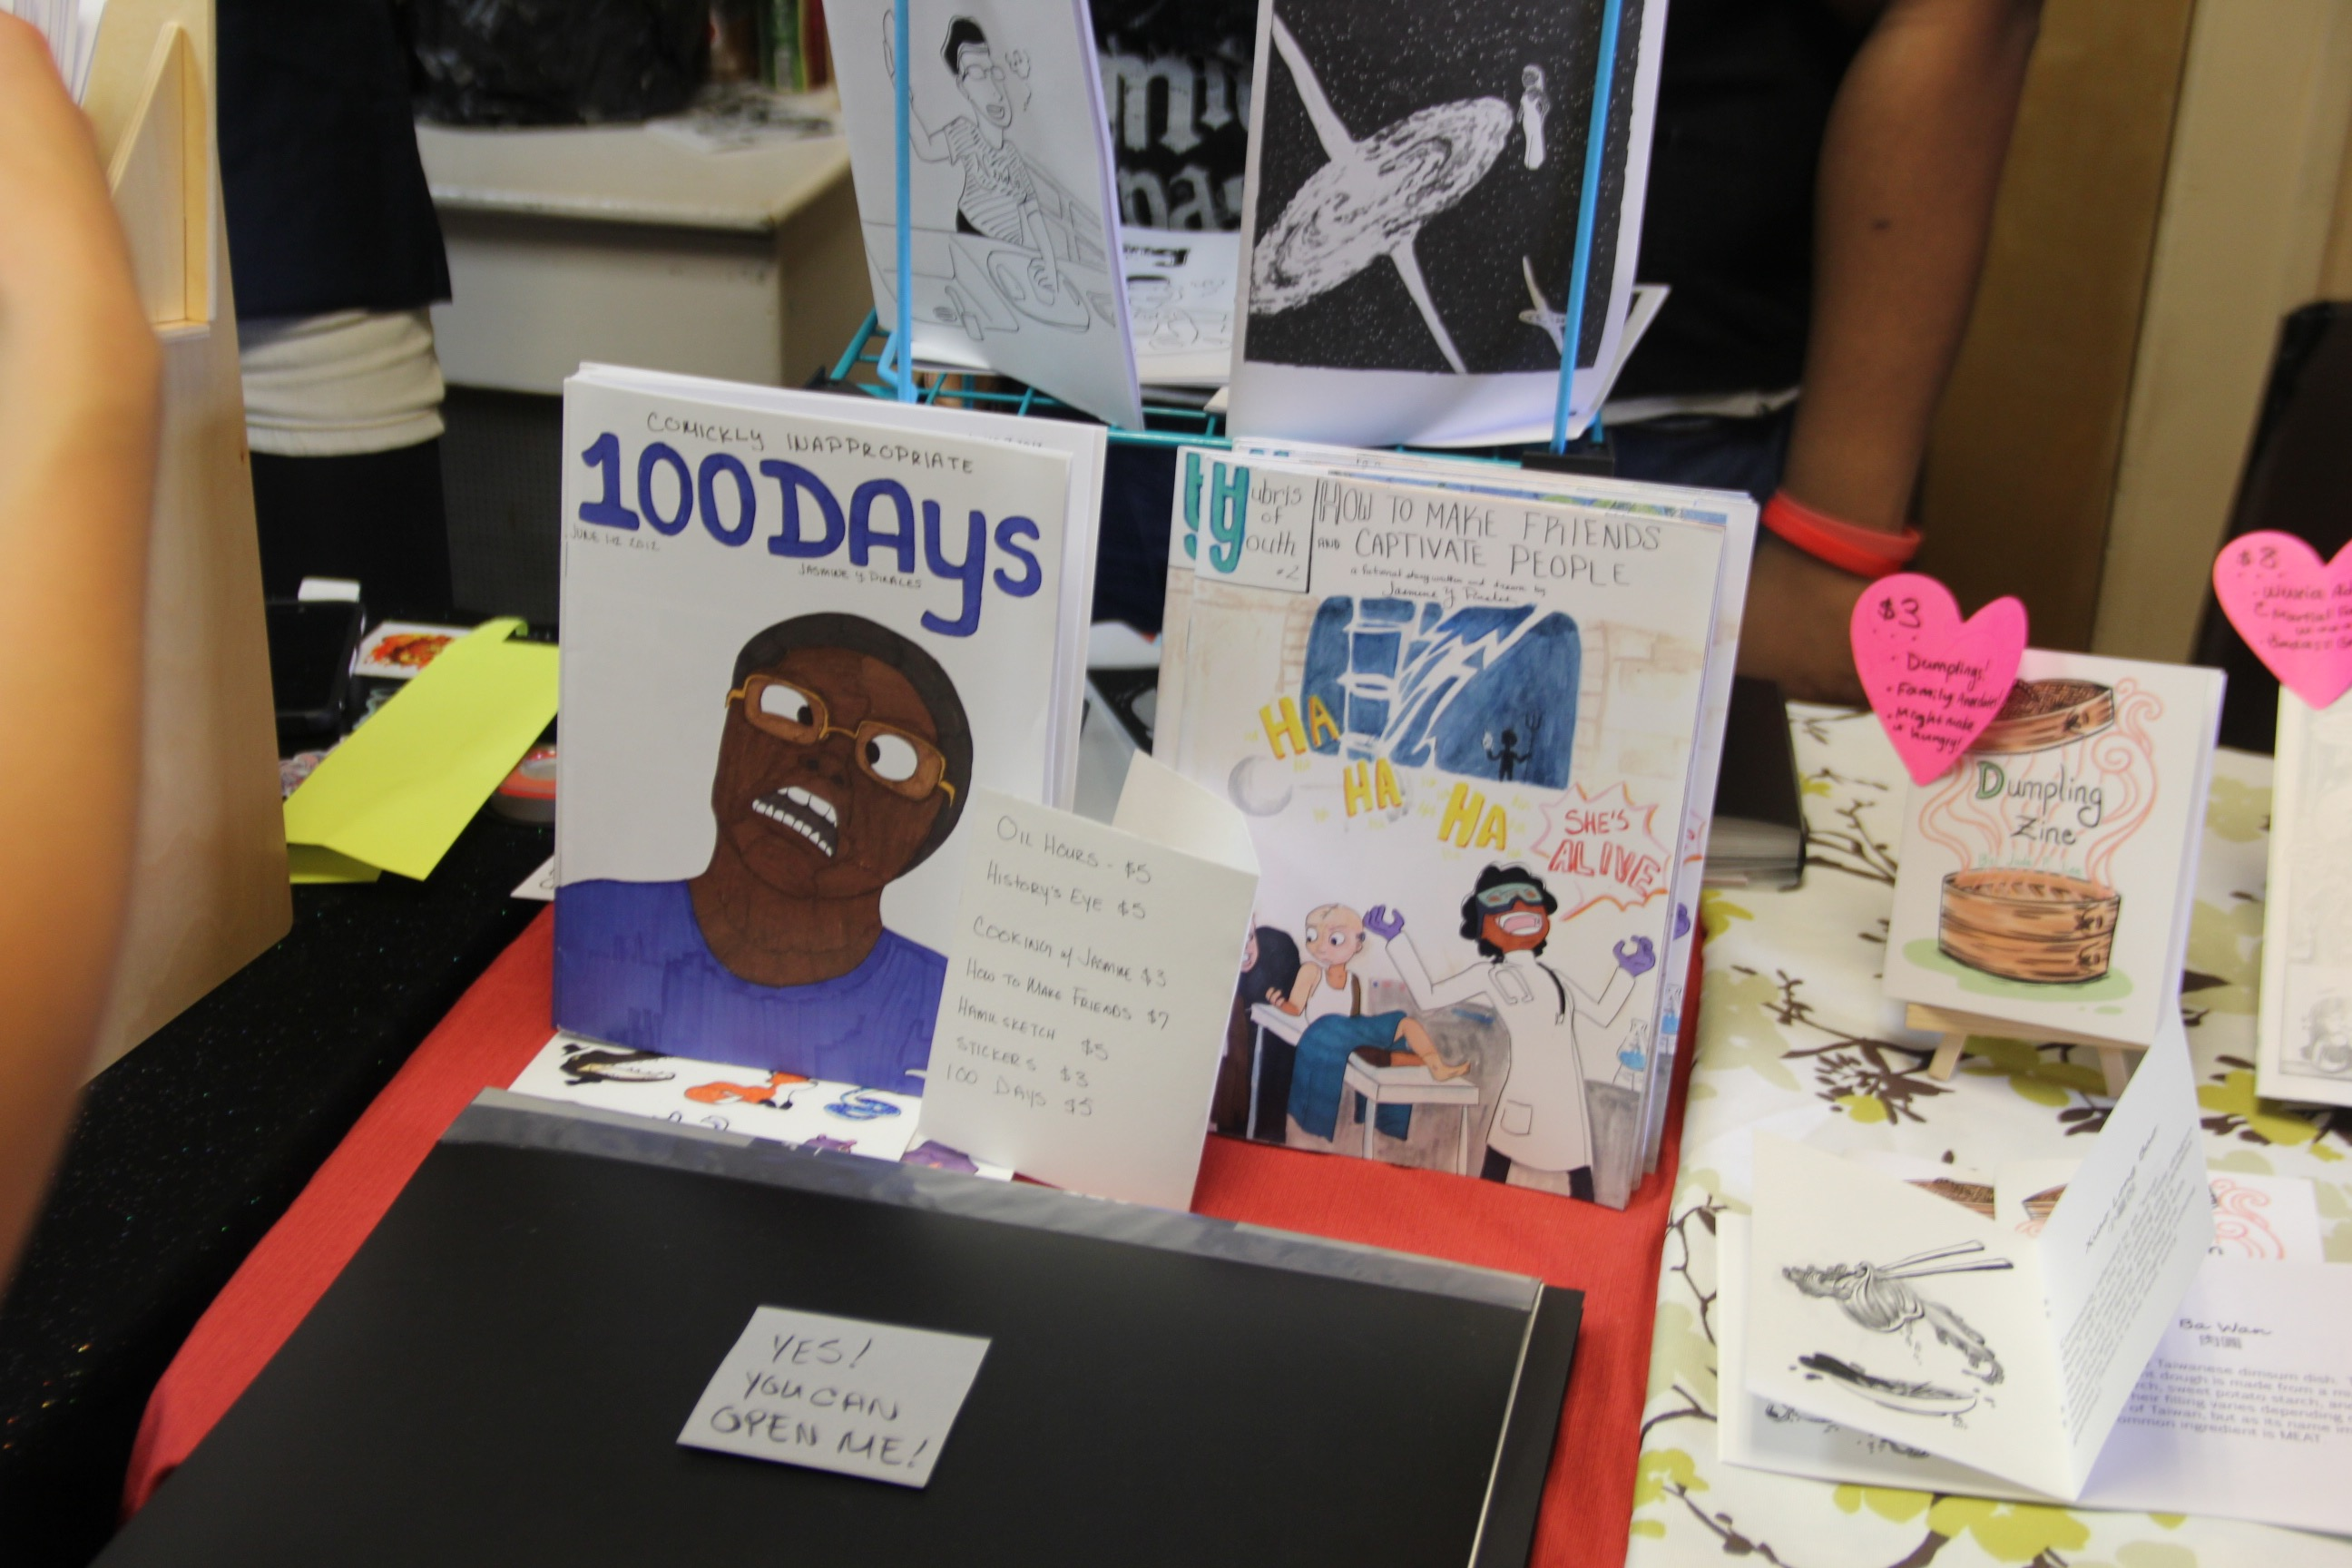 Zinester Jasmine Pinales created the first version of 100 Days, a comic book style zine, in 2012.